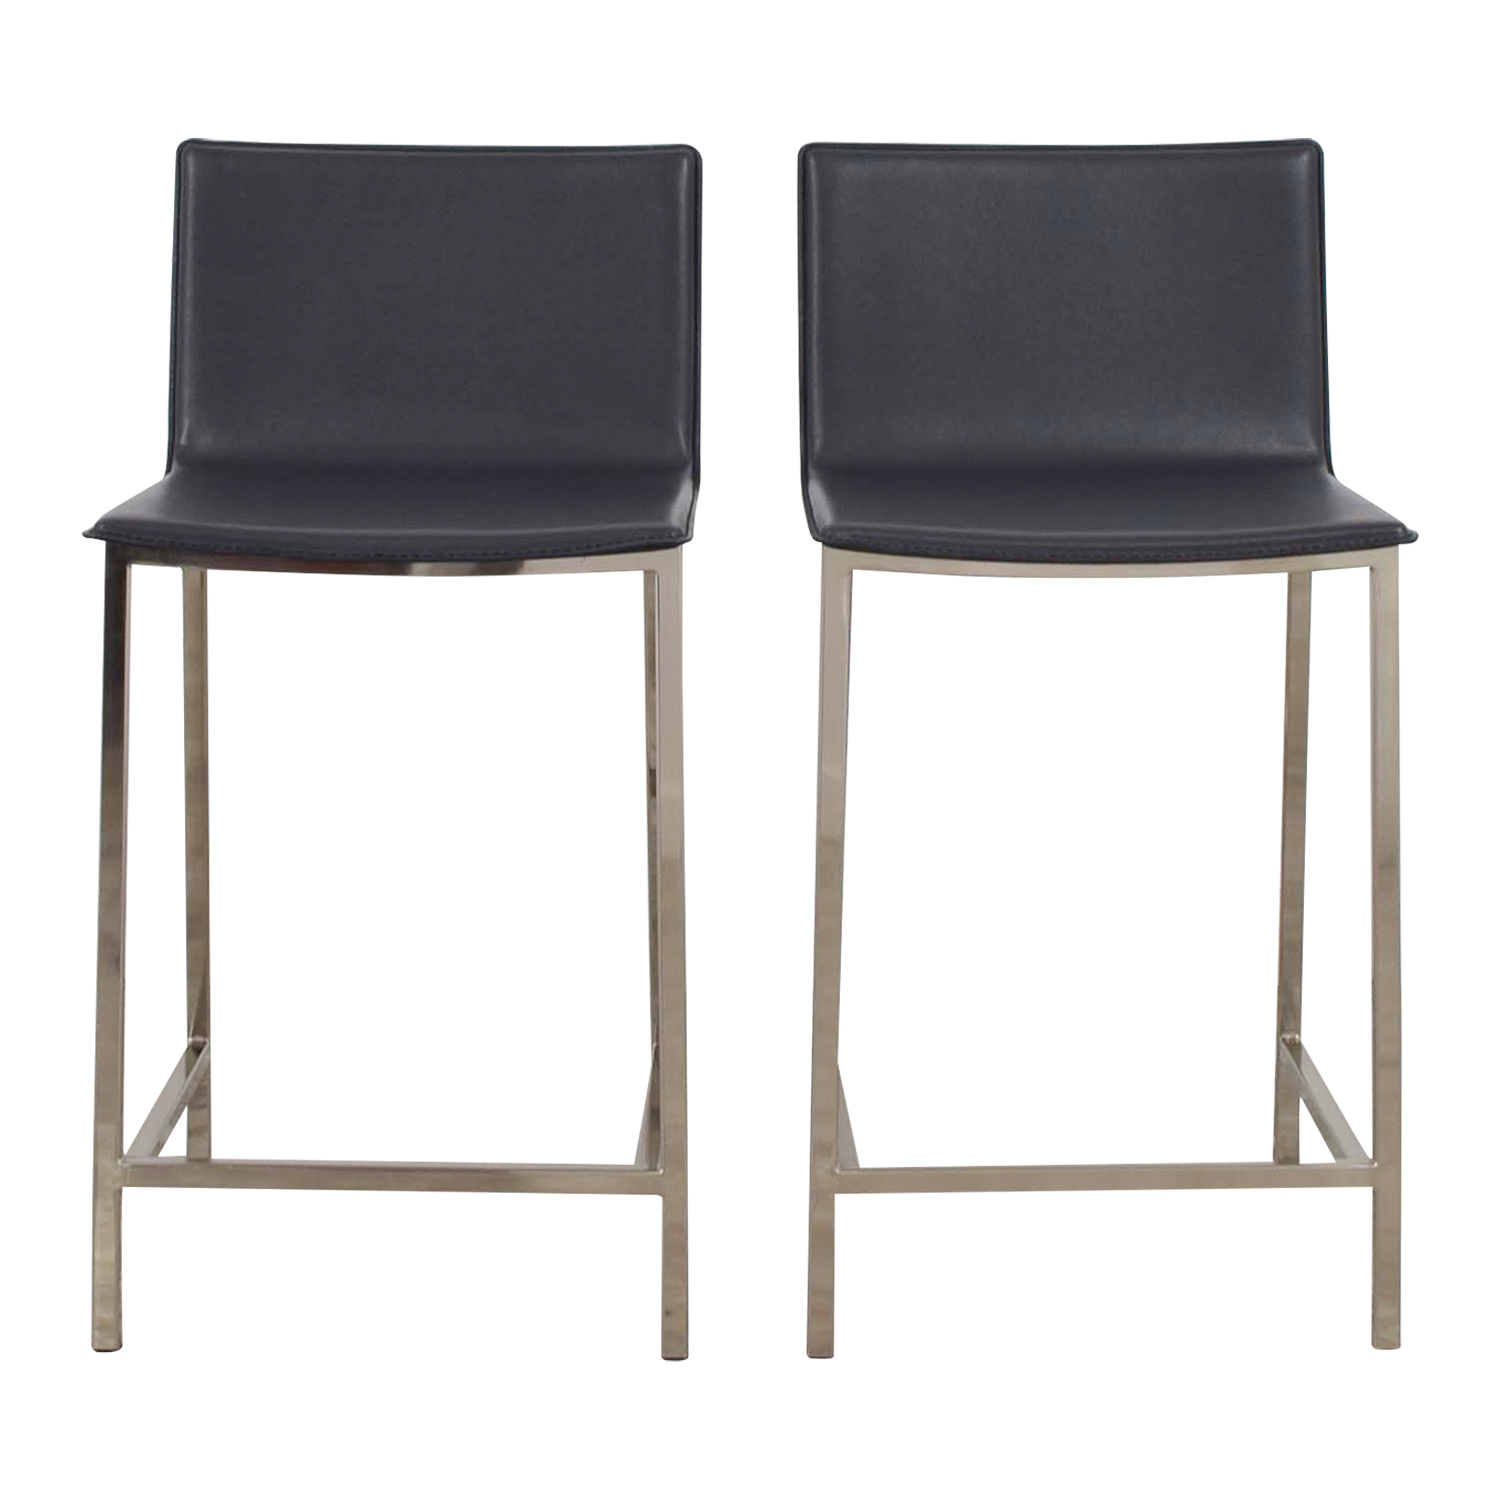 CB2 CB2 Grey Leather Bar Stools